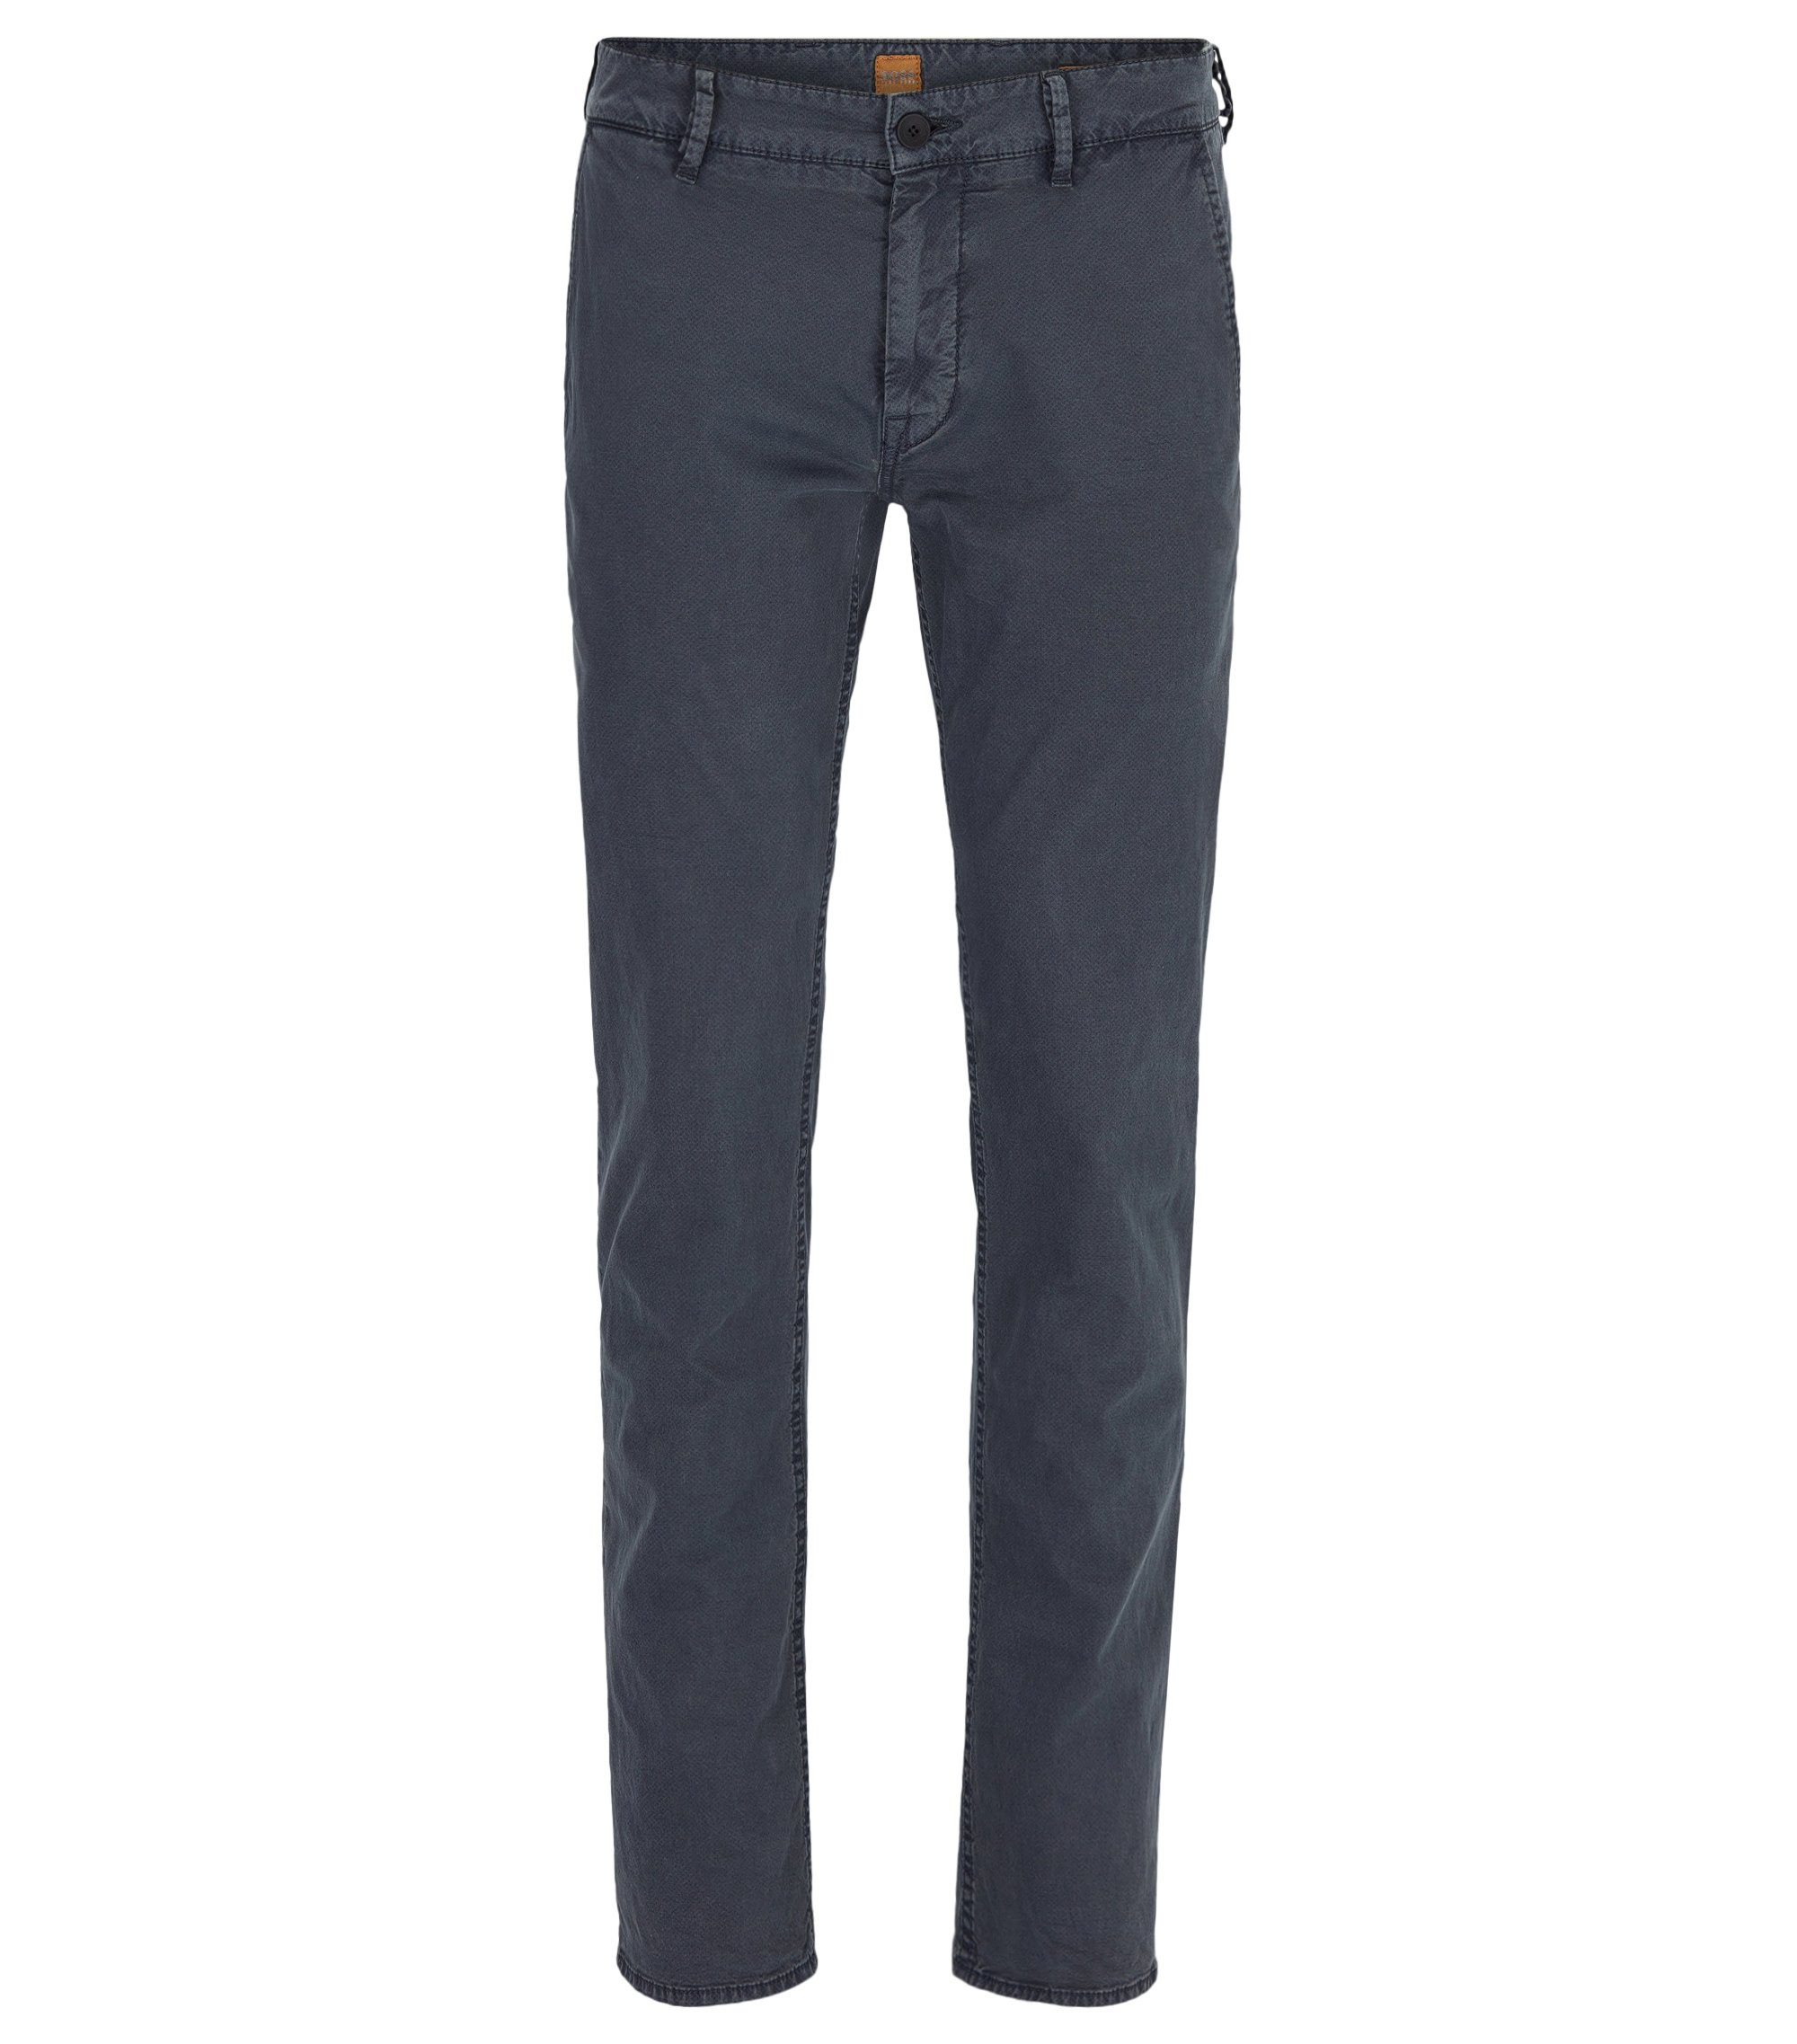 Pantalon Slim Fit en coton italien stretch, Bleu foncé